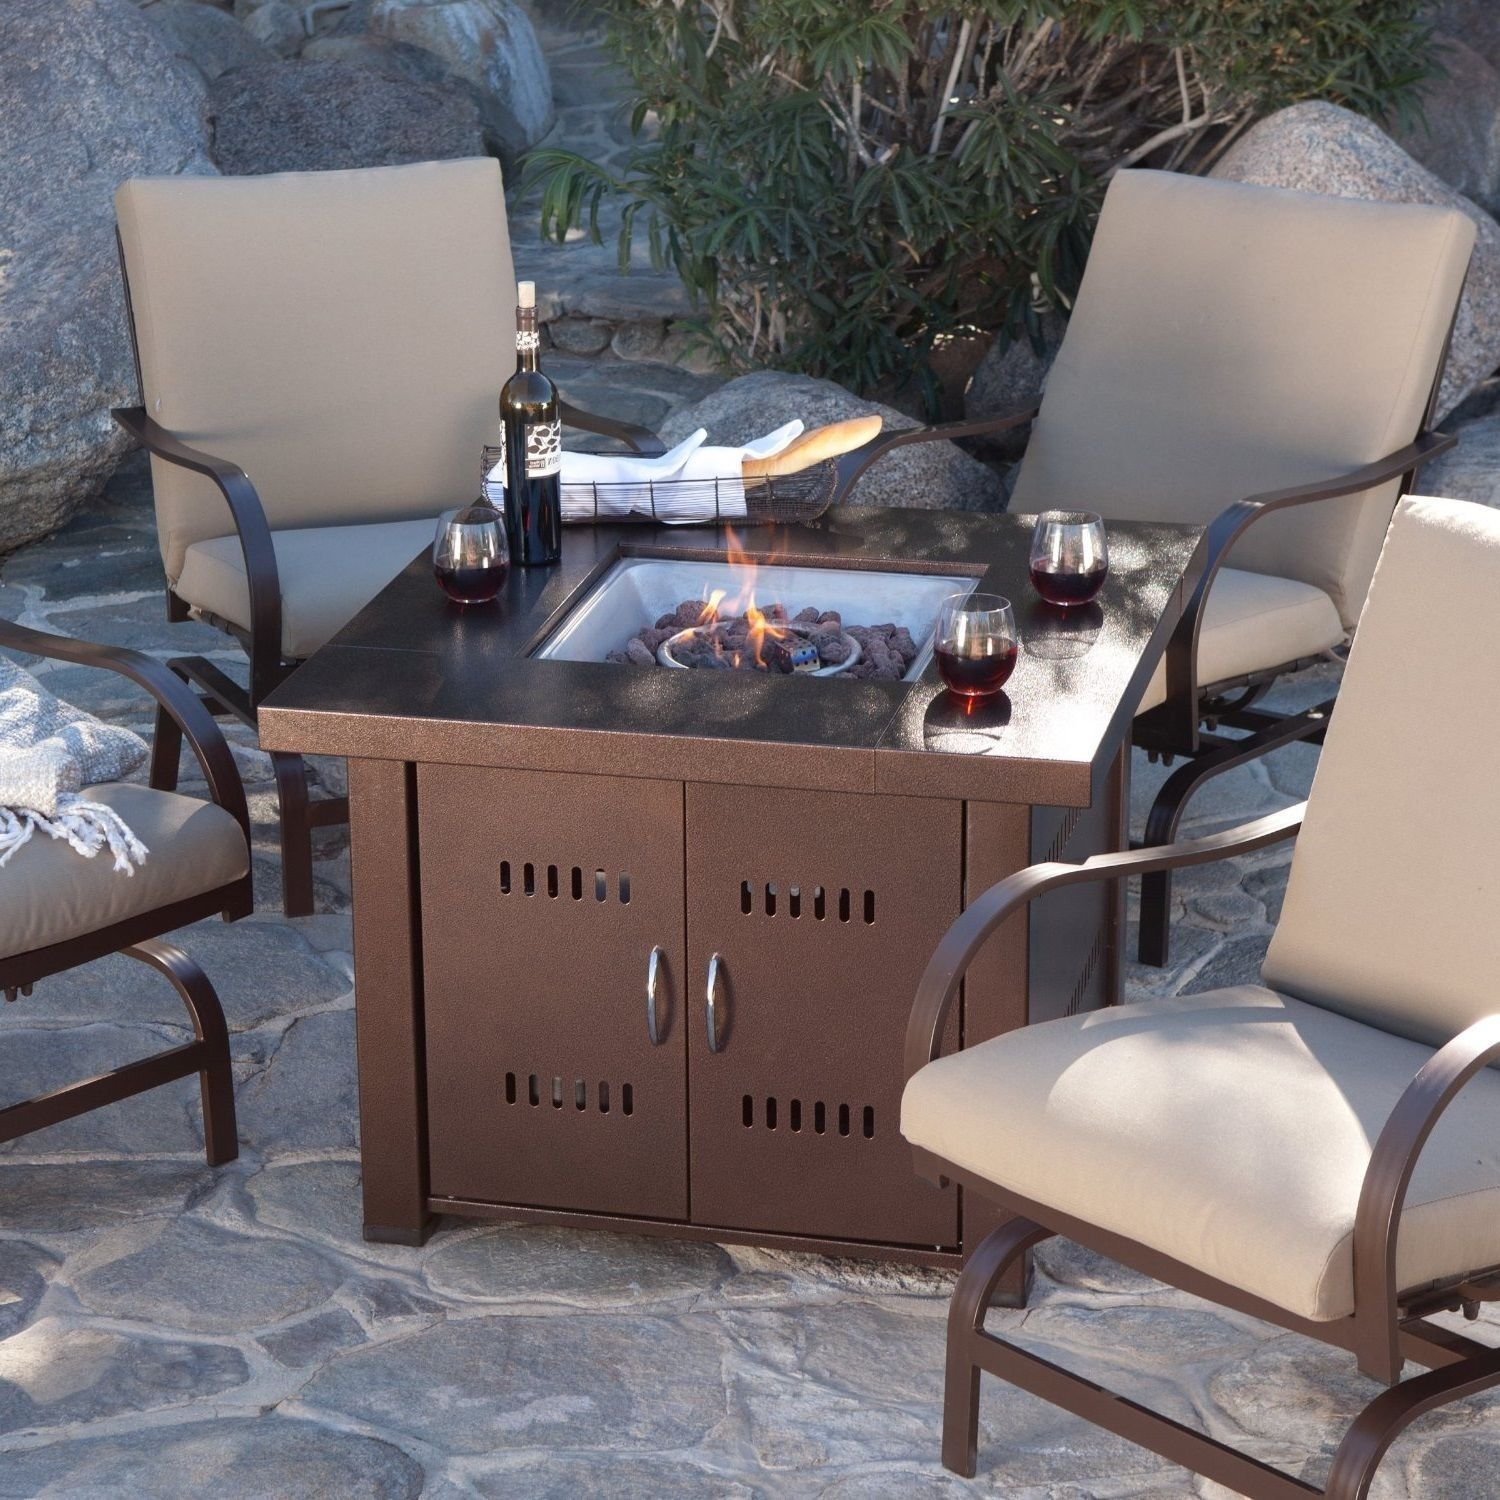 Cheap Propane Patio Fireplace Find Propane Patio Fireplace Deals On